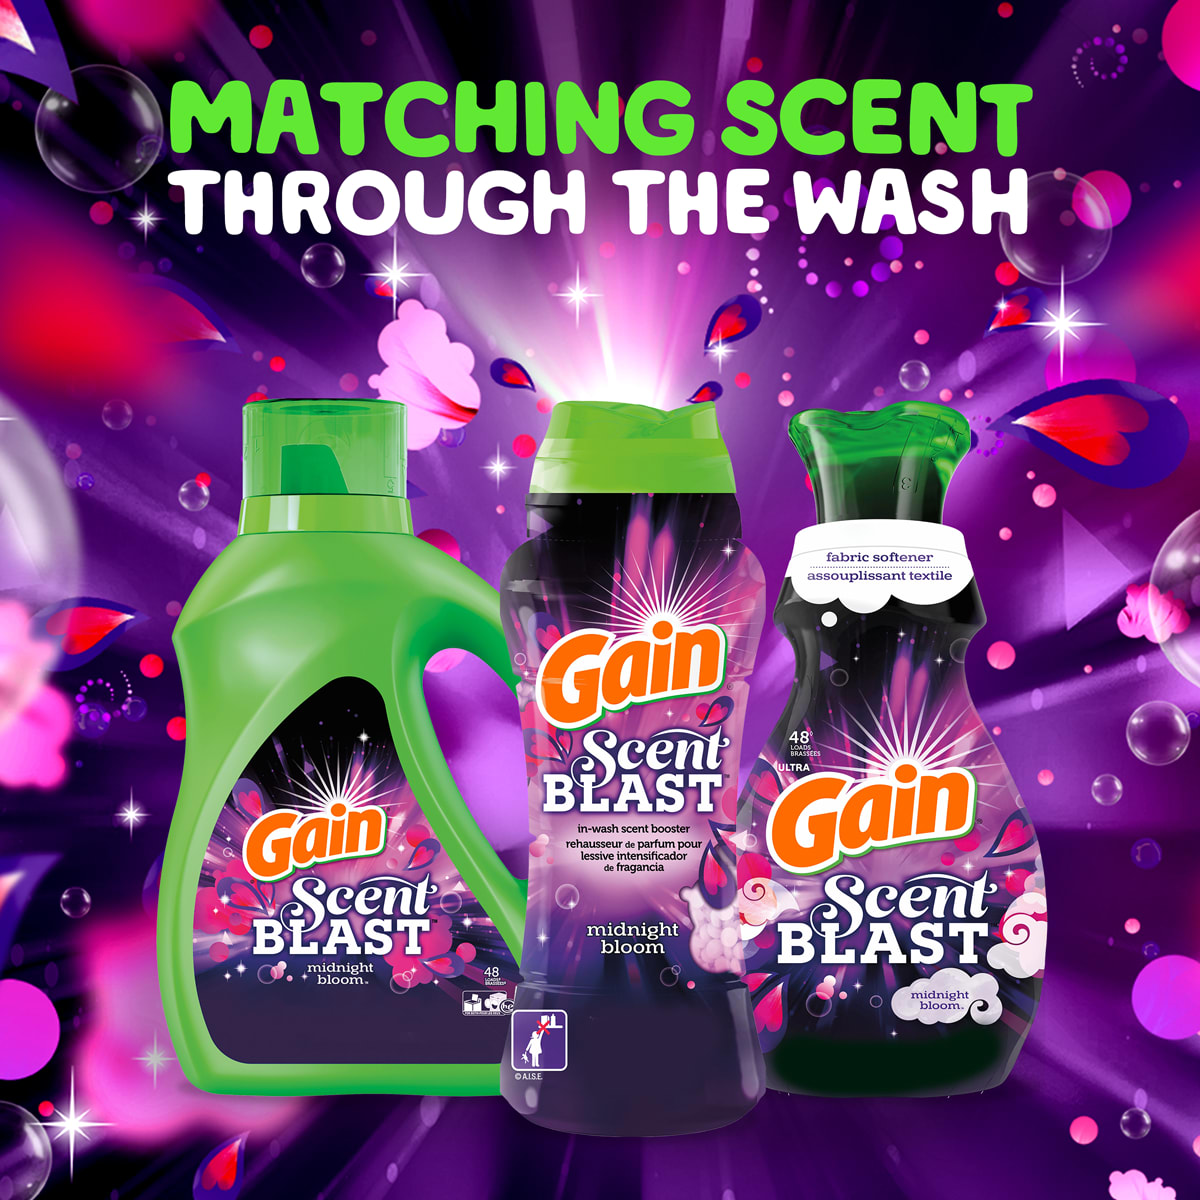 Gain Midnight Bloom product line matches scents throughout the wash